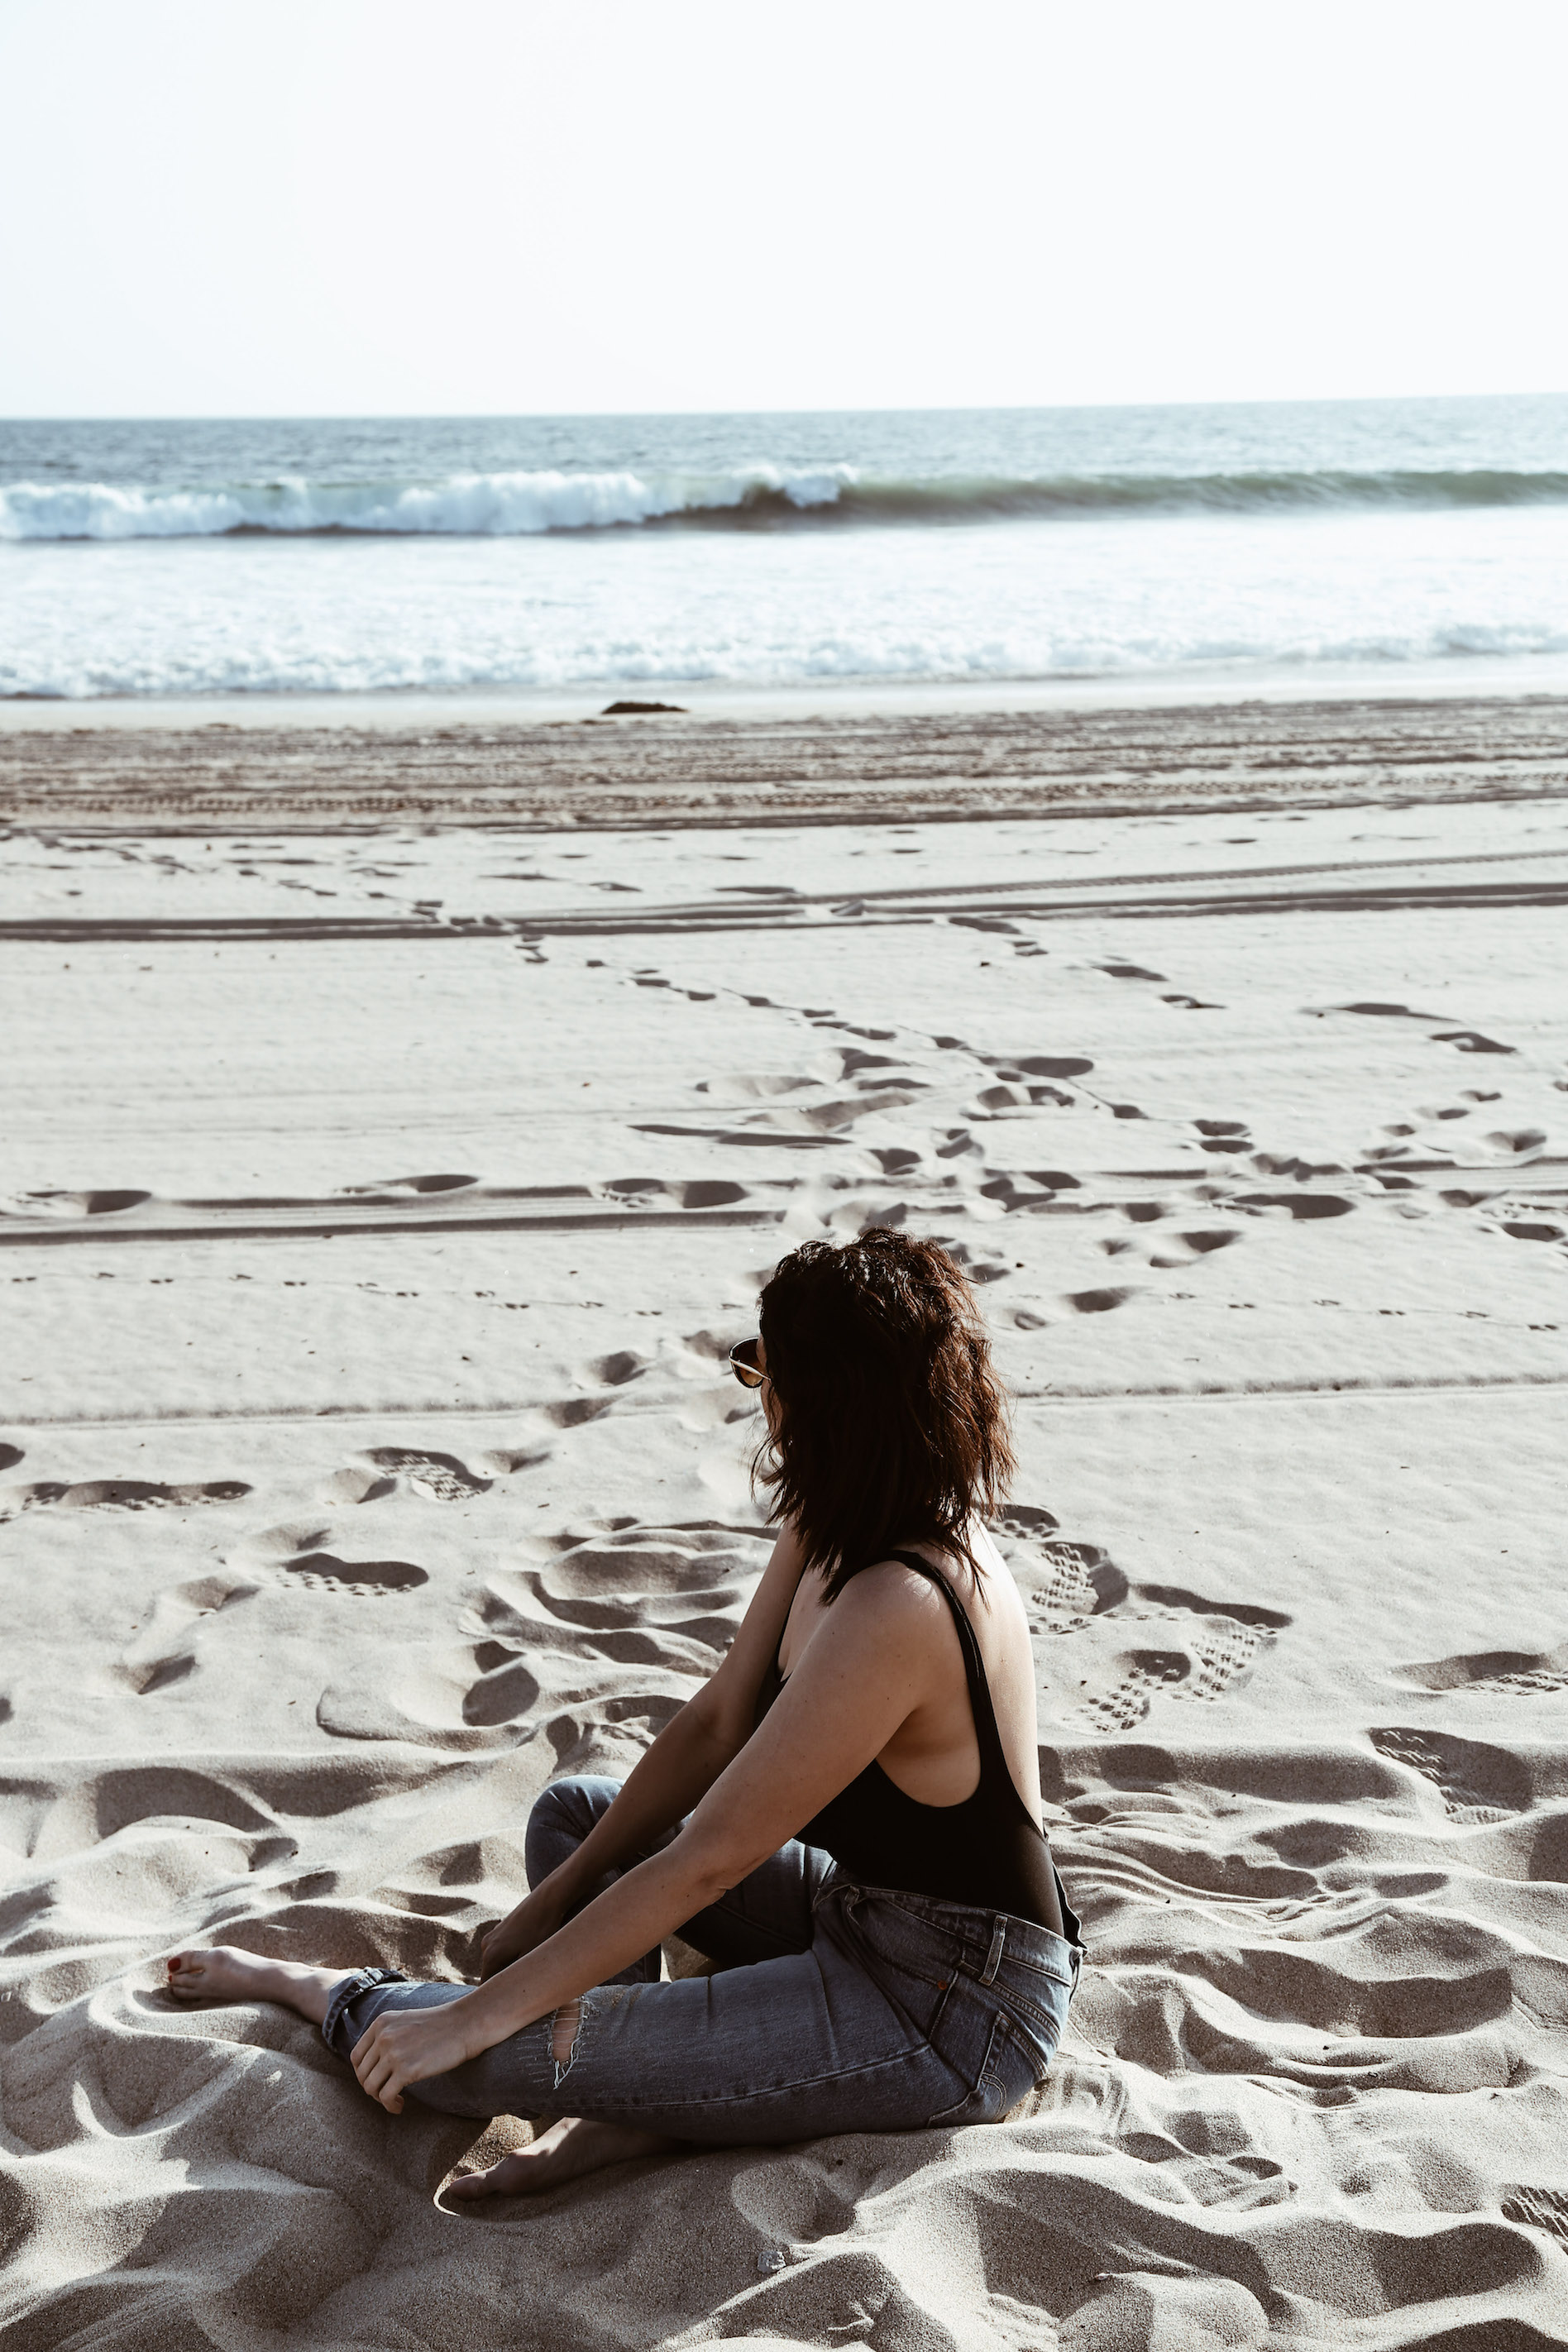 black one-piece swimsuit and levis on the beach3.jpg